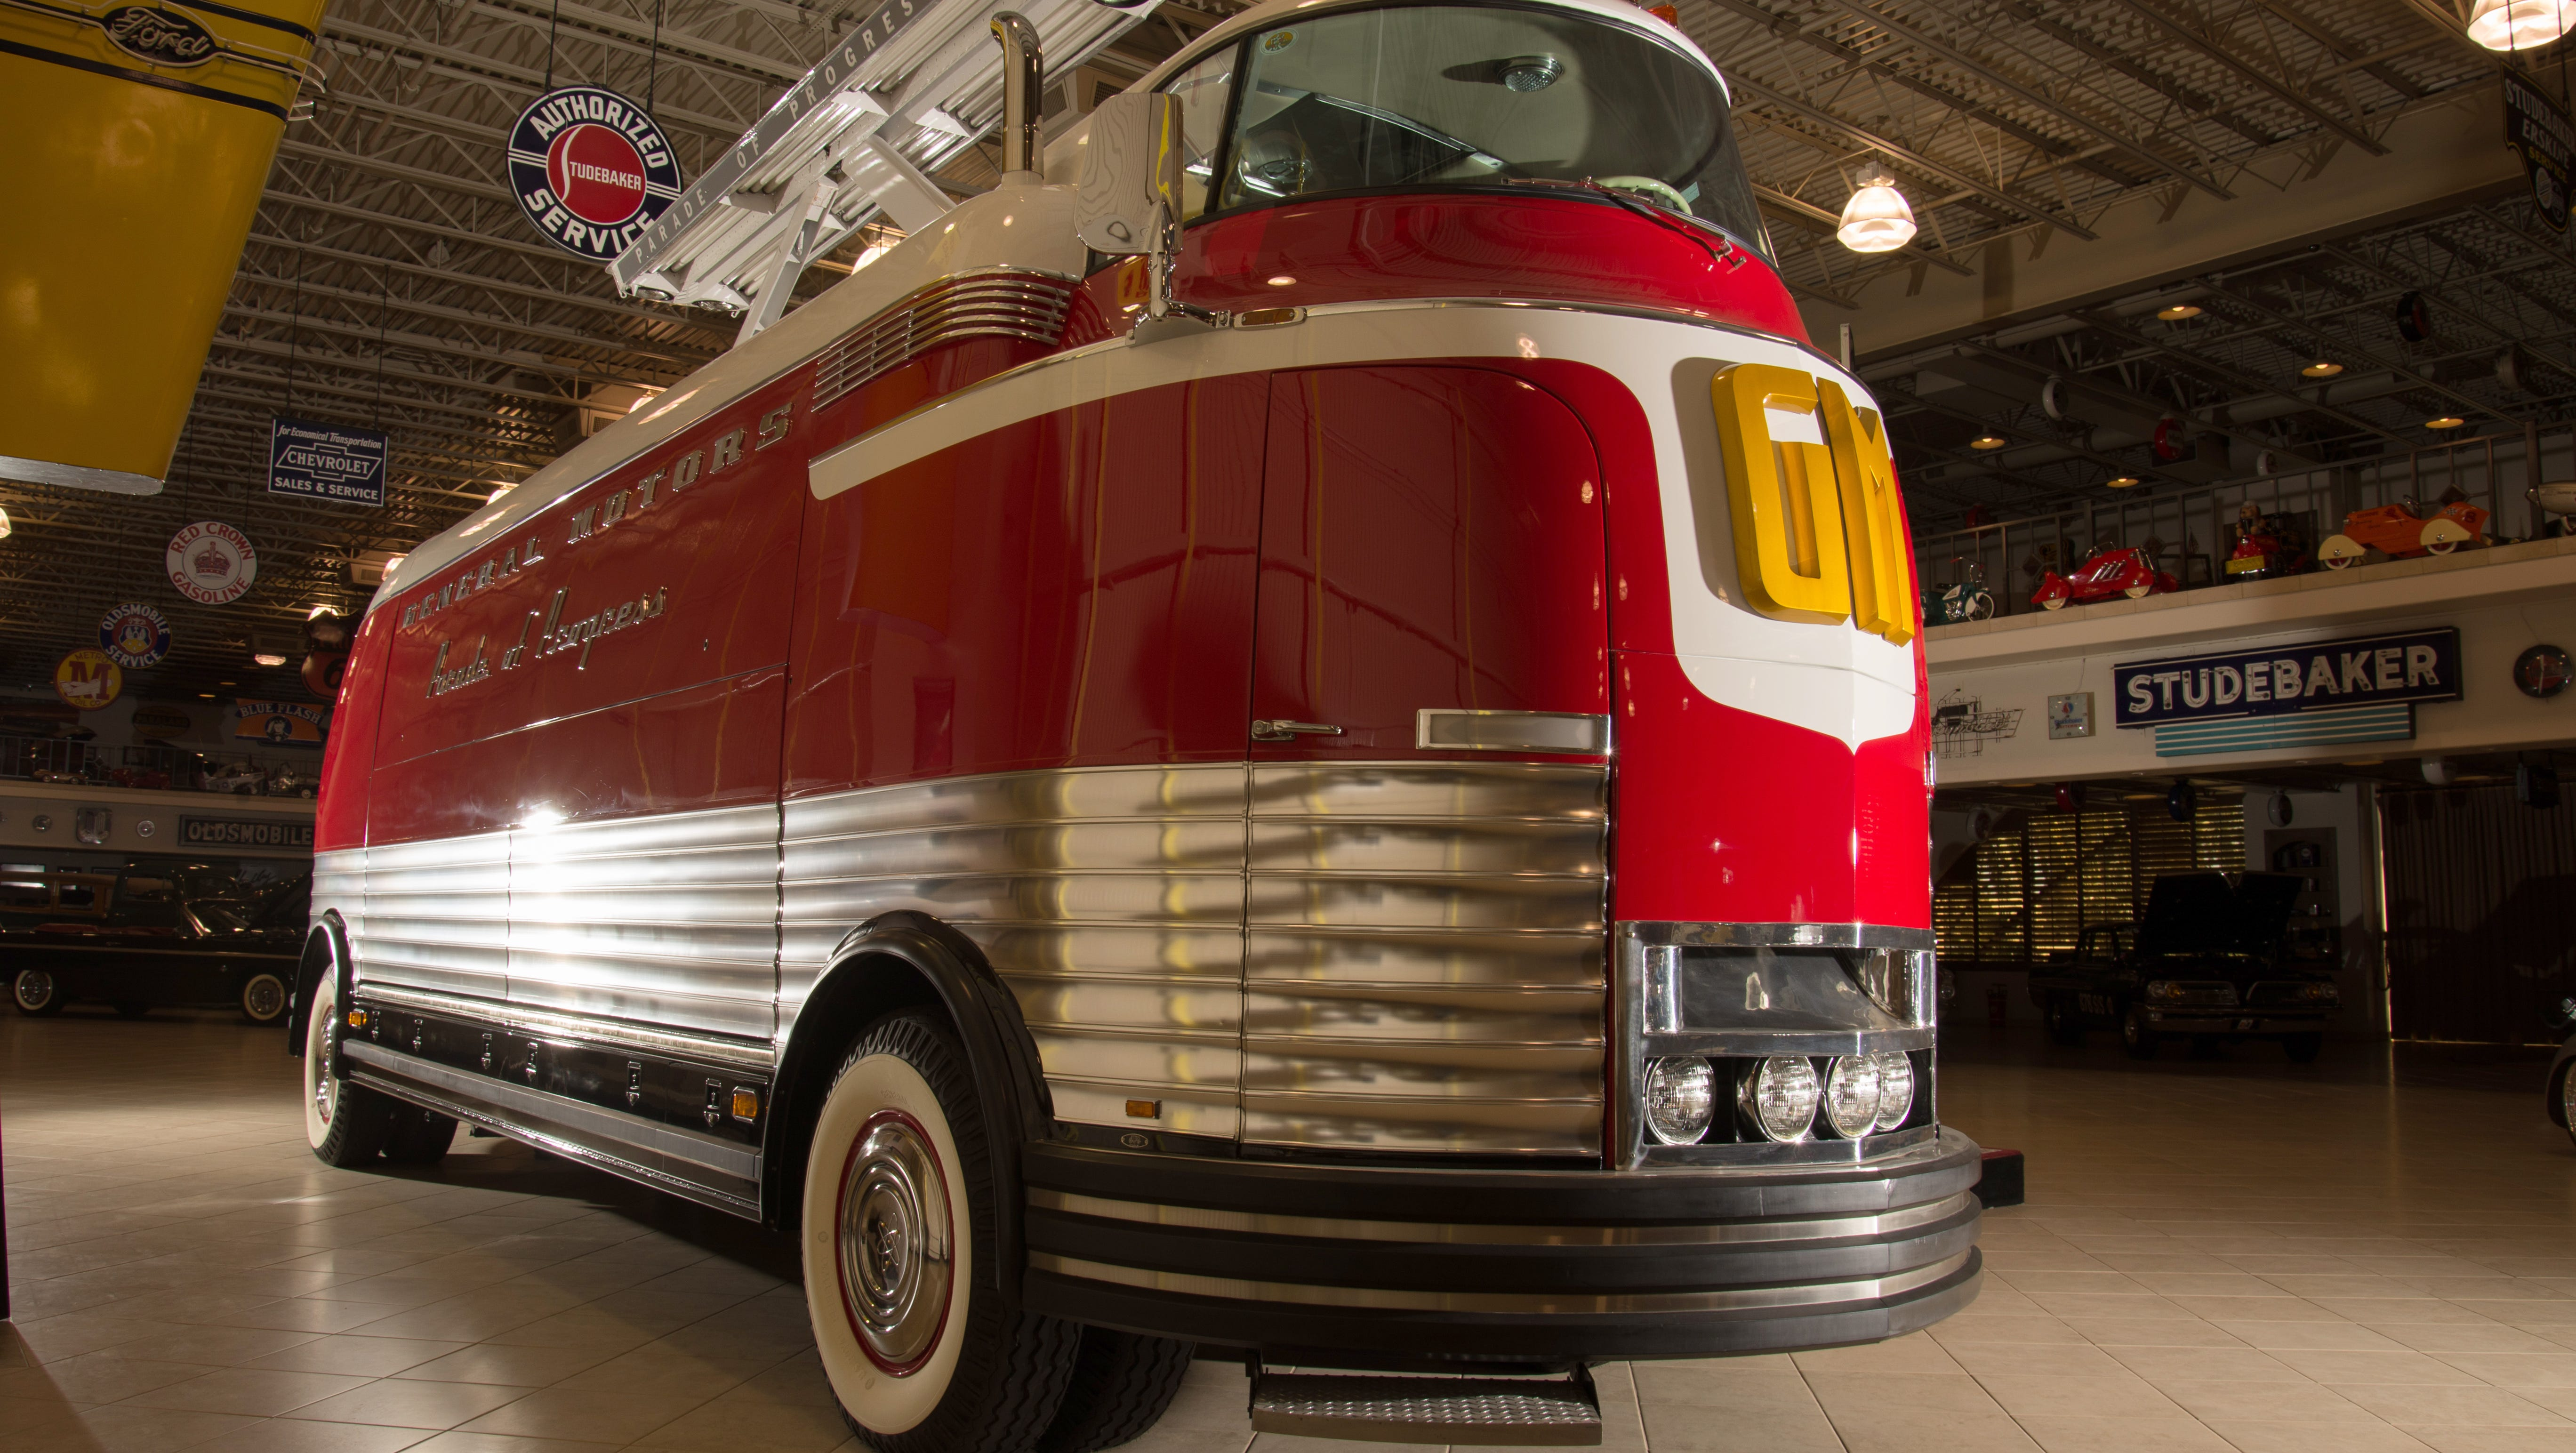 Gm Futurliner Bus To Be Auctioned At Barrett